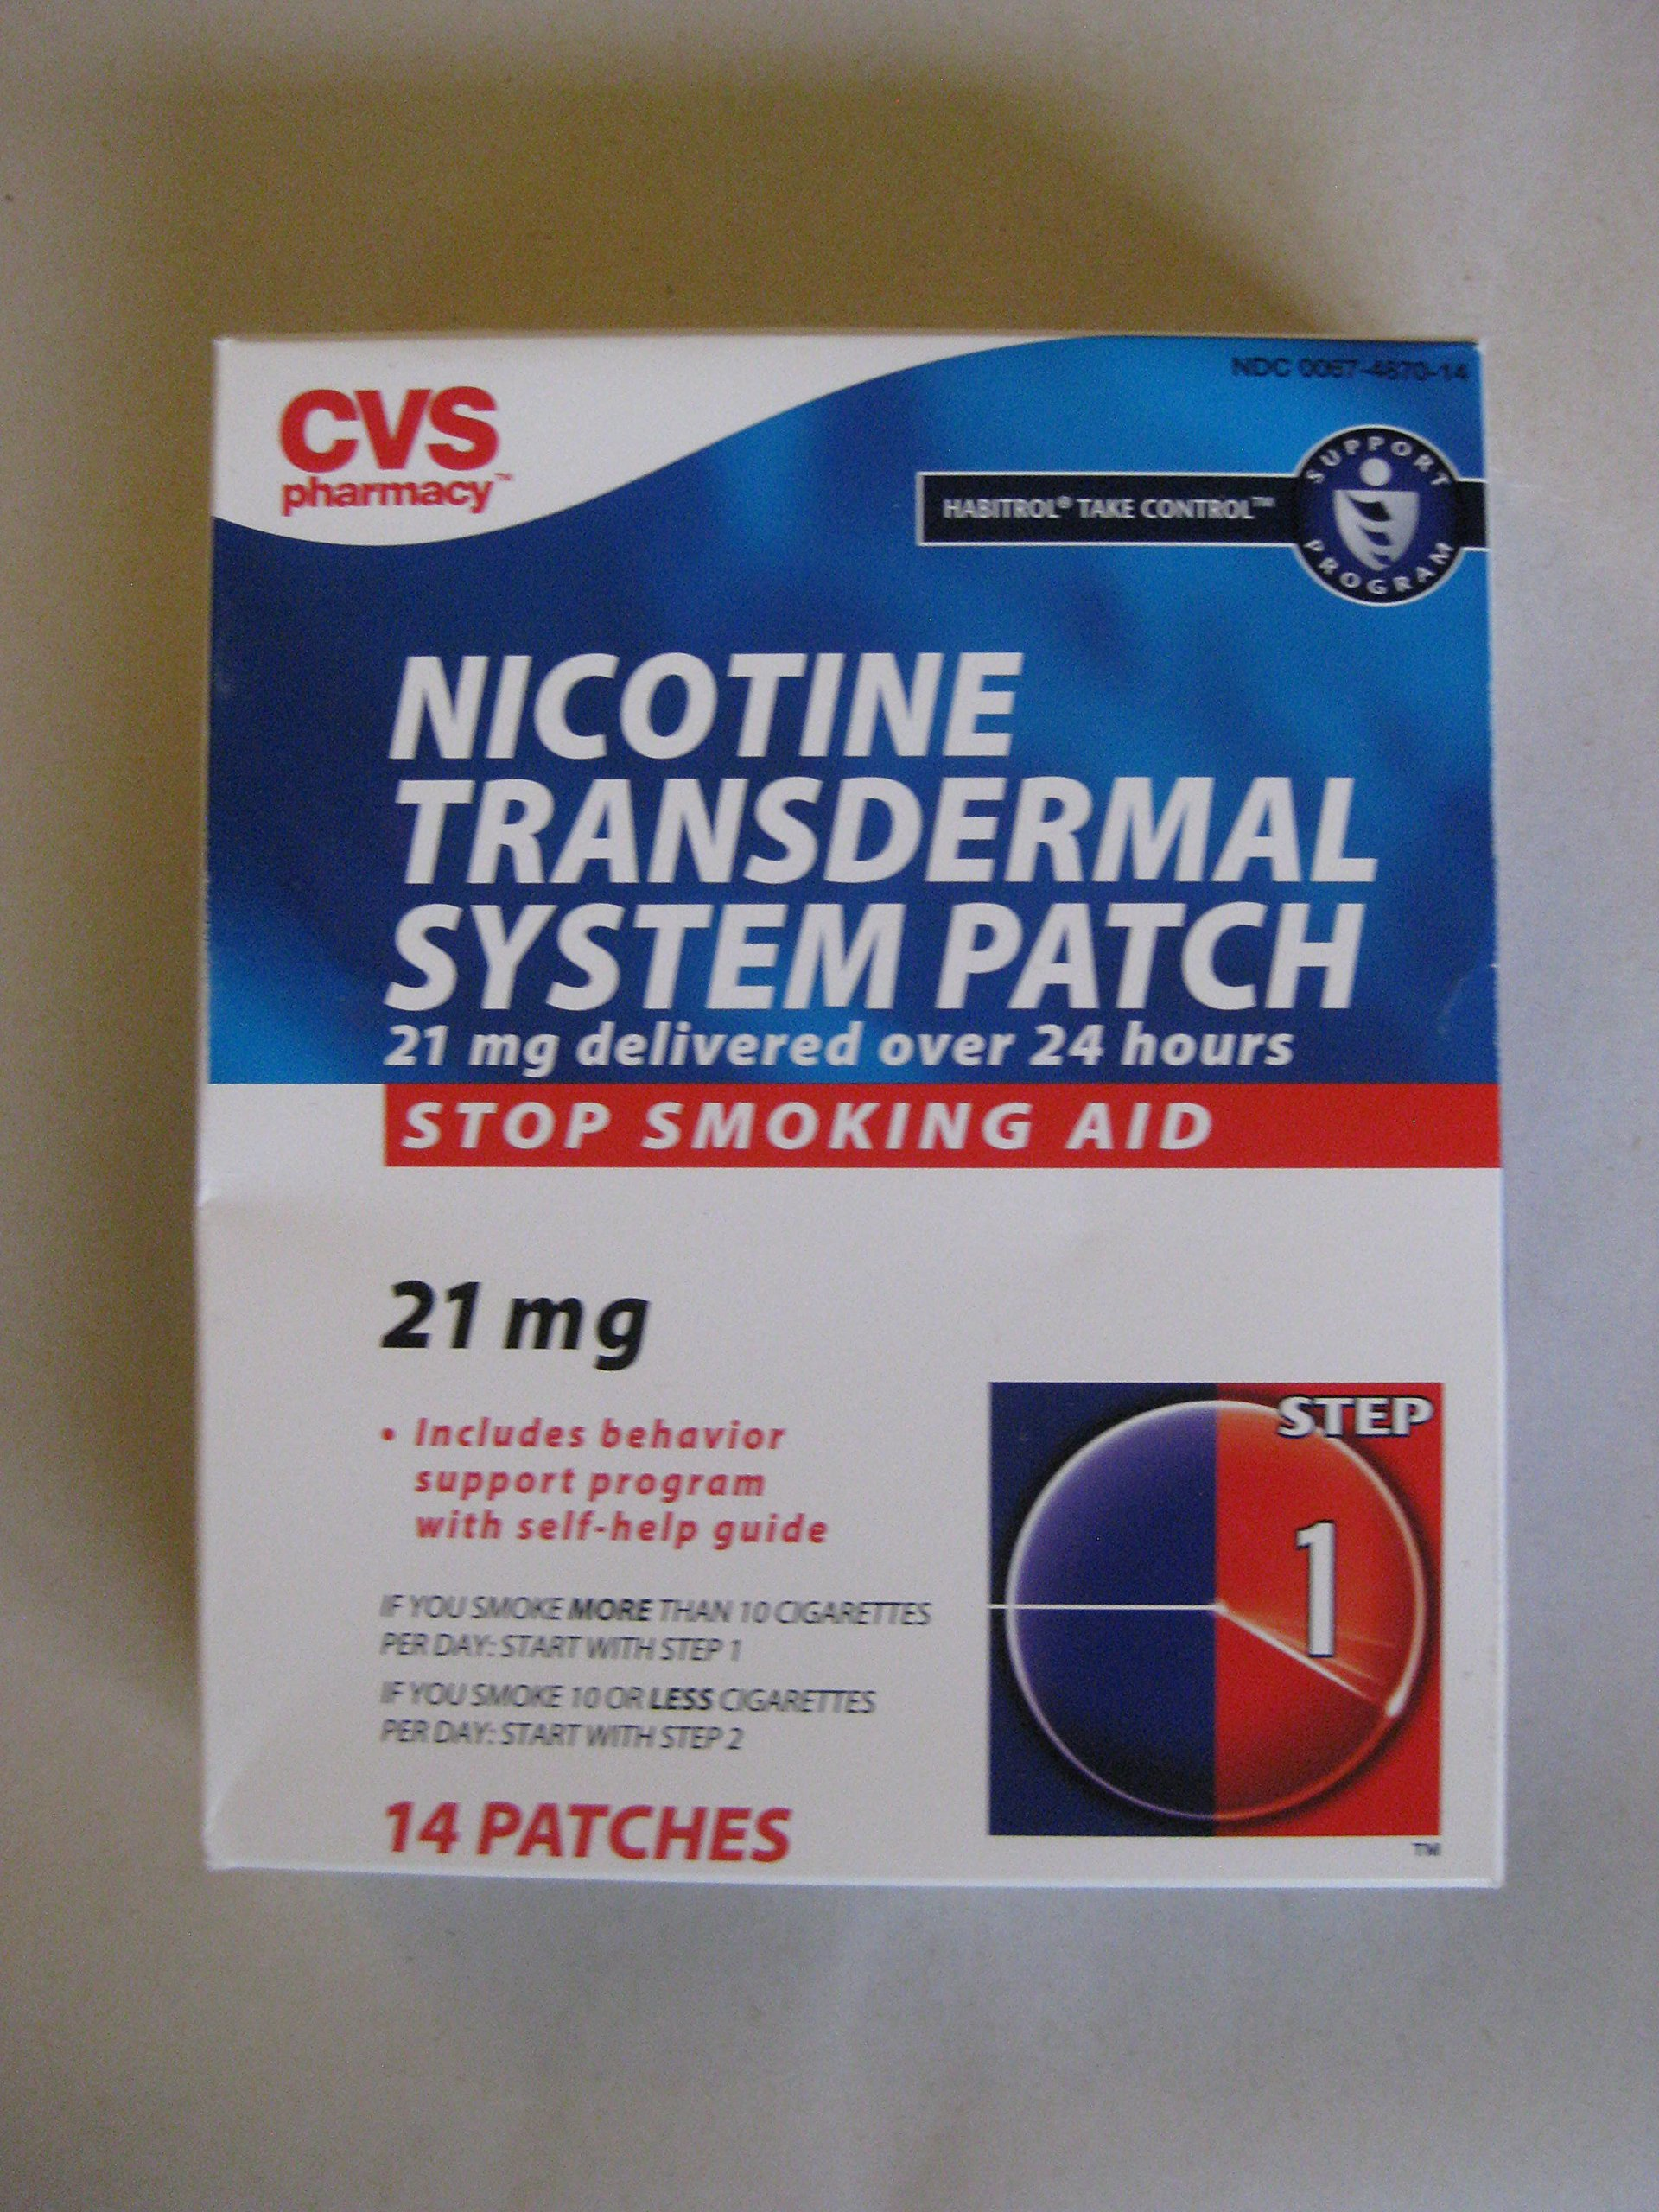 Cvs Nicotine Transdermal System PATCH 21mg STEP 1 14 PATCHES